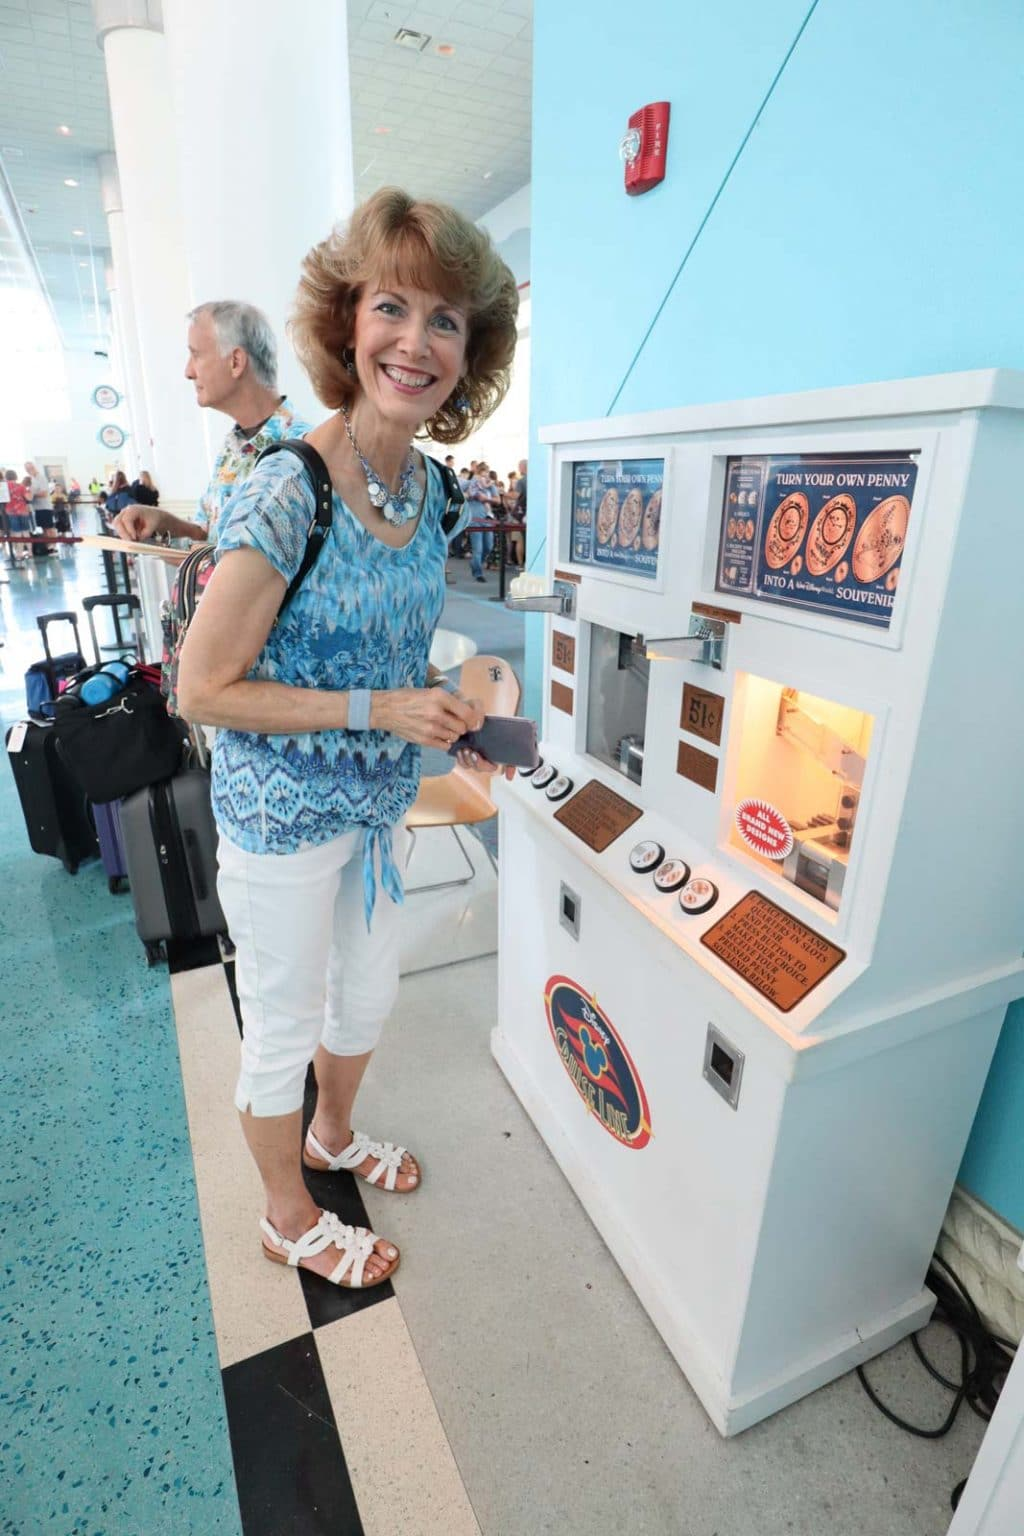 A woman using the pressed penny machine at the Port Canaveral cruise terminal.